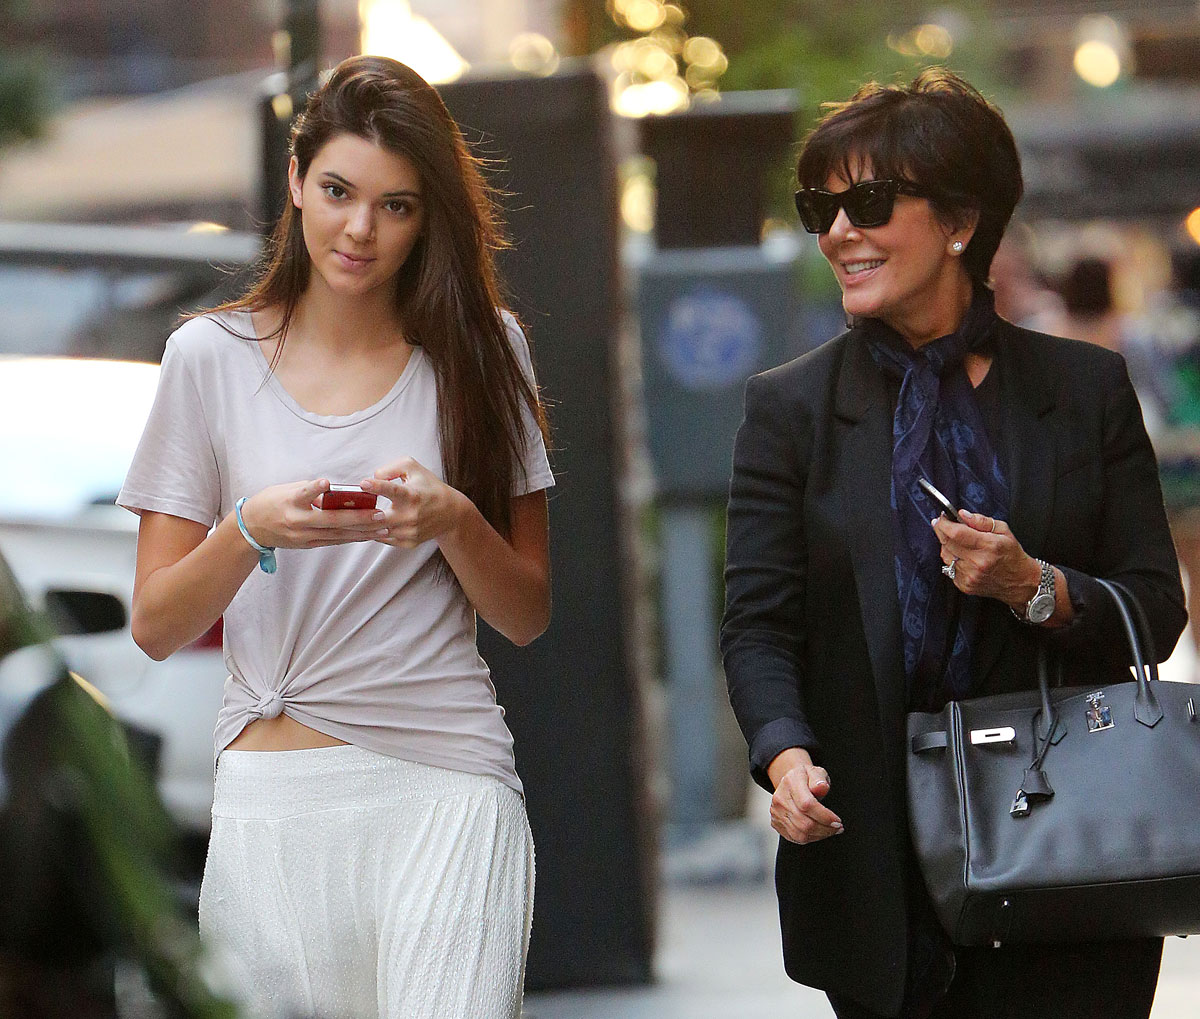 KENDALL and Kris JENNER Out for Shopping